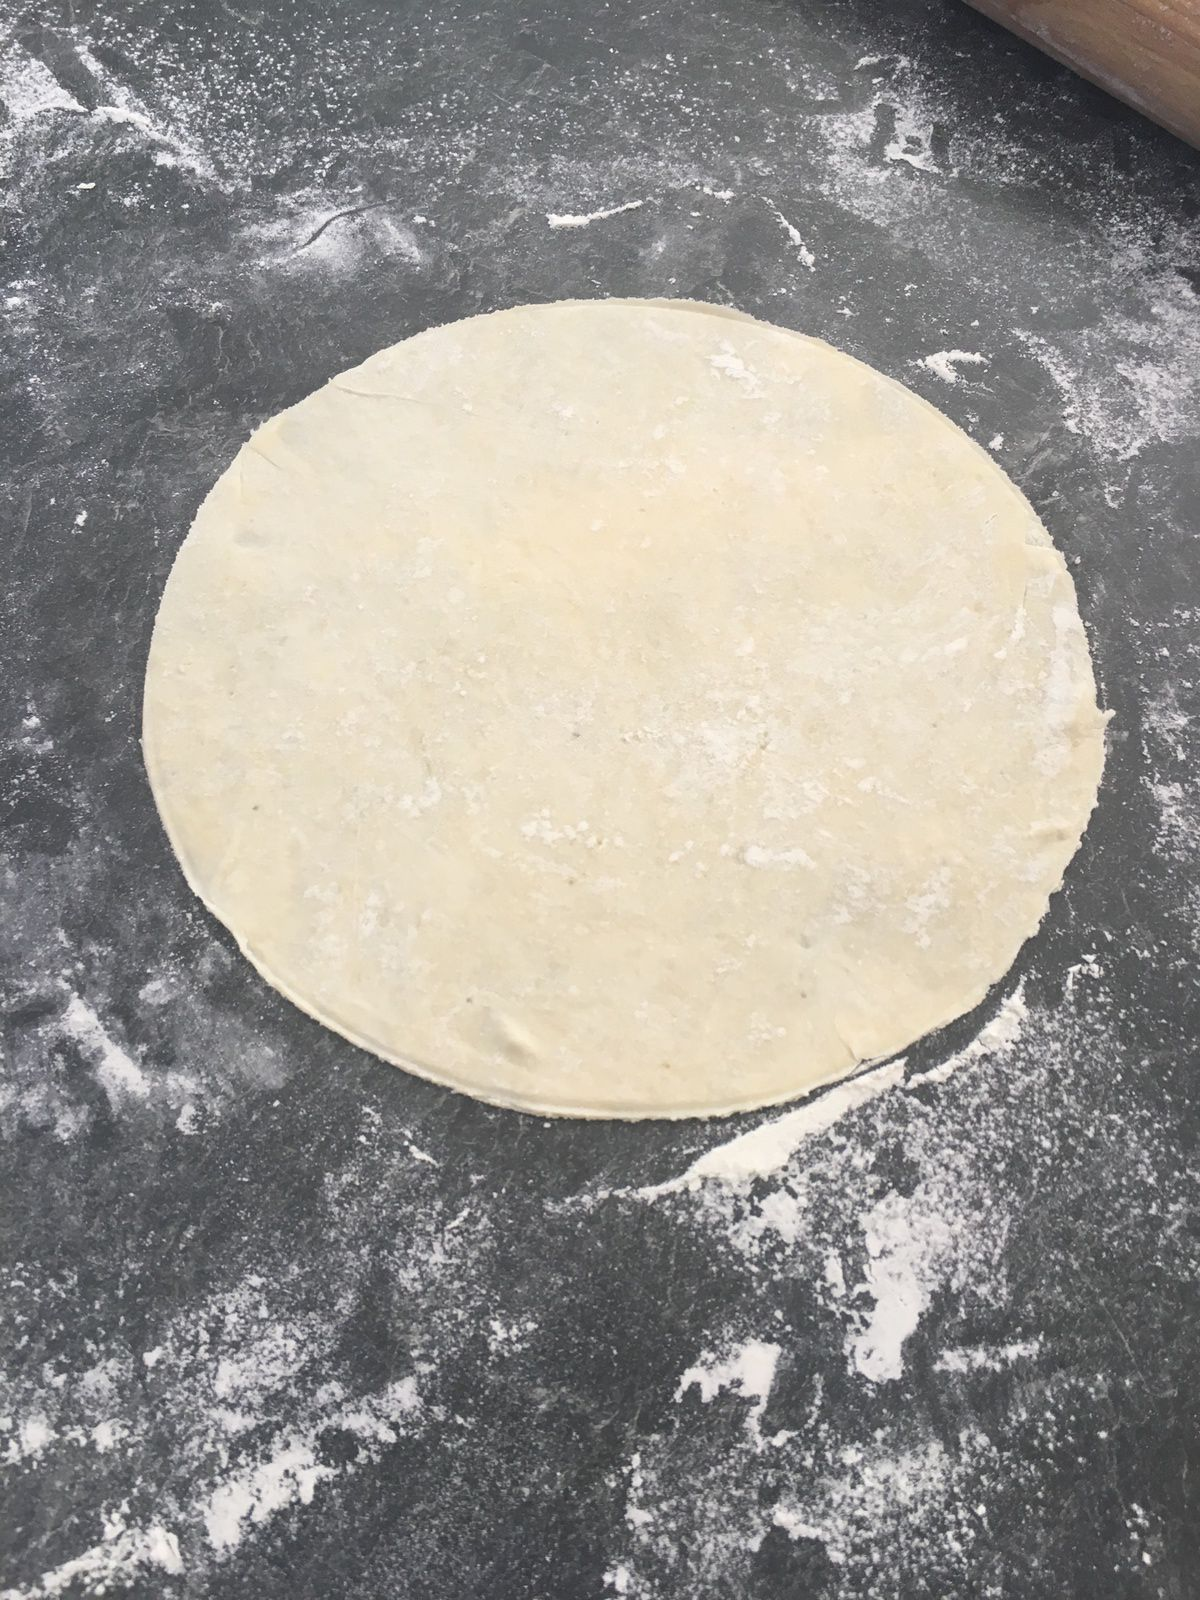 Tortillas pour chili, fajitas, enchiladas etc.